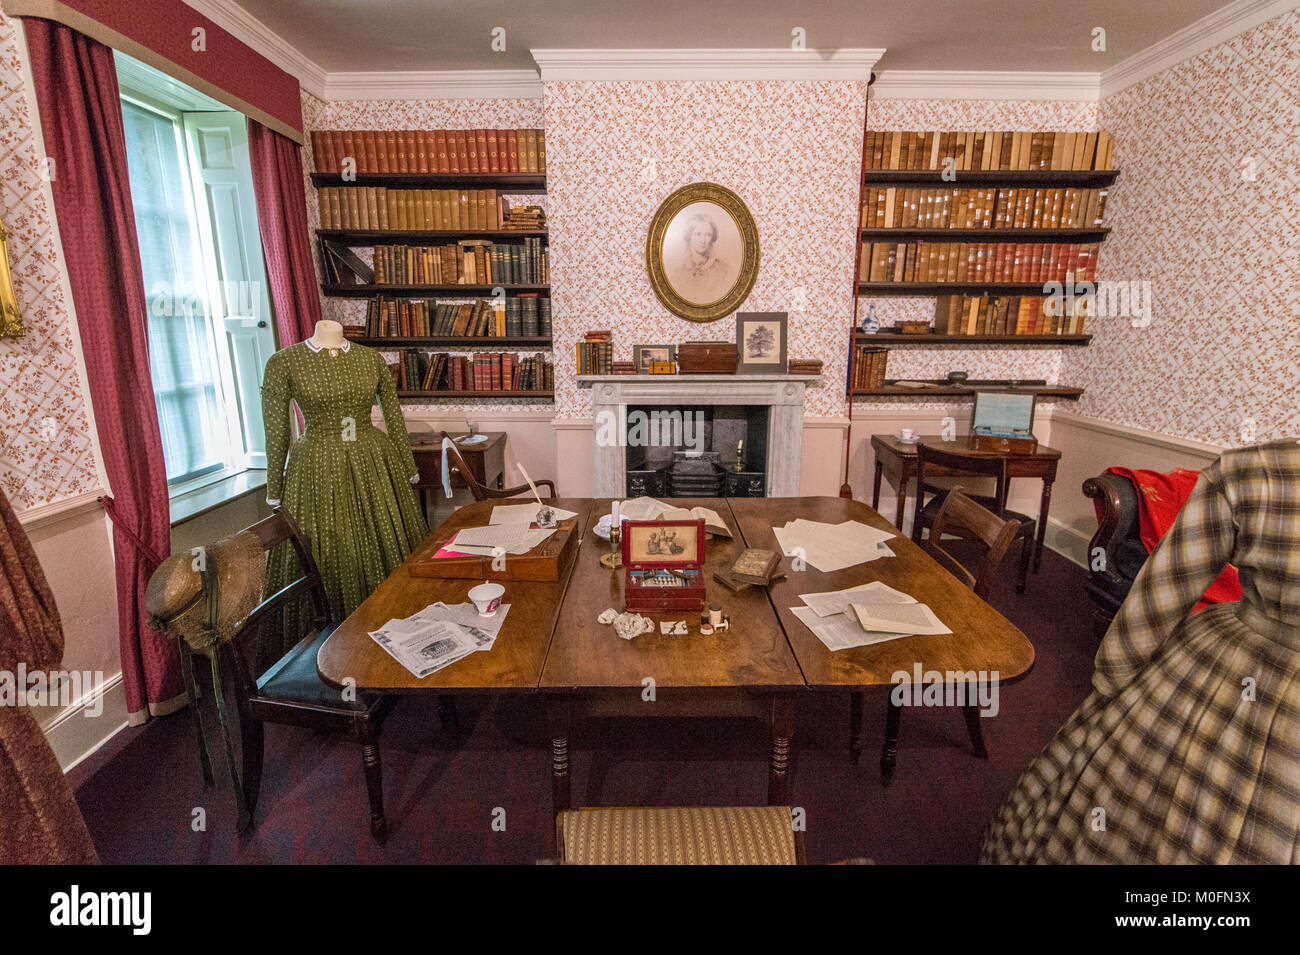 Interior Of Dining Room At Bront Parsonage Museum Haworth West Yorkshire England